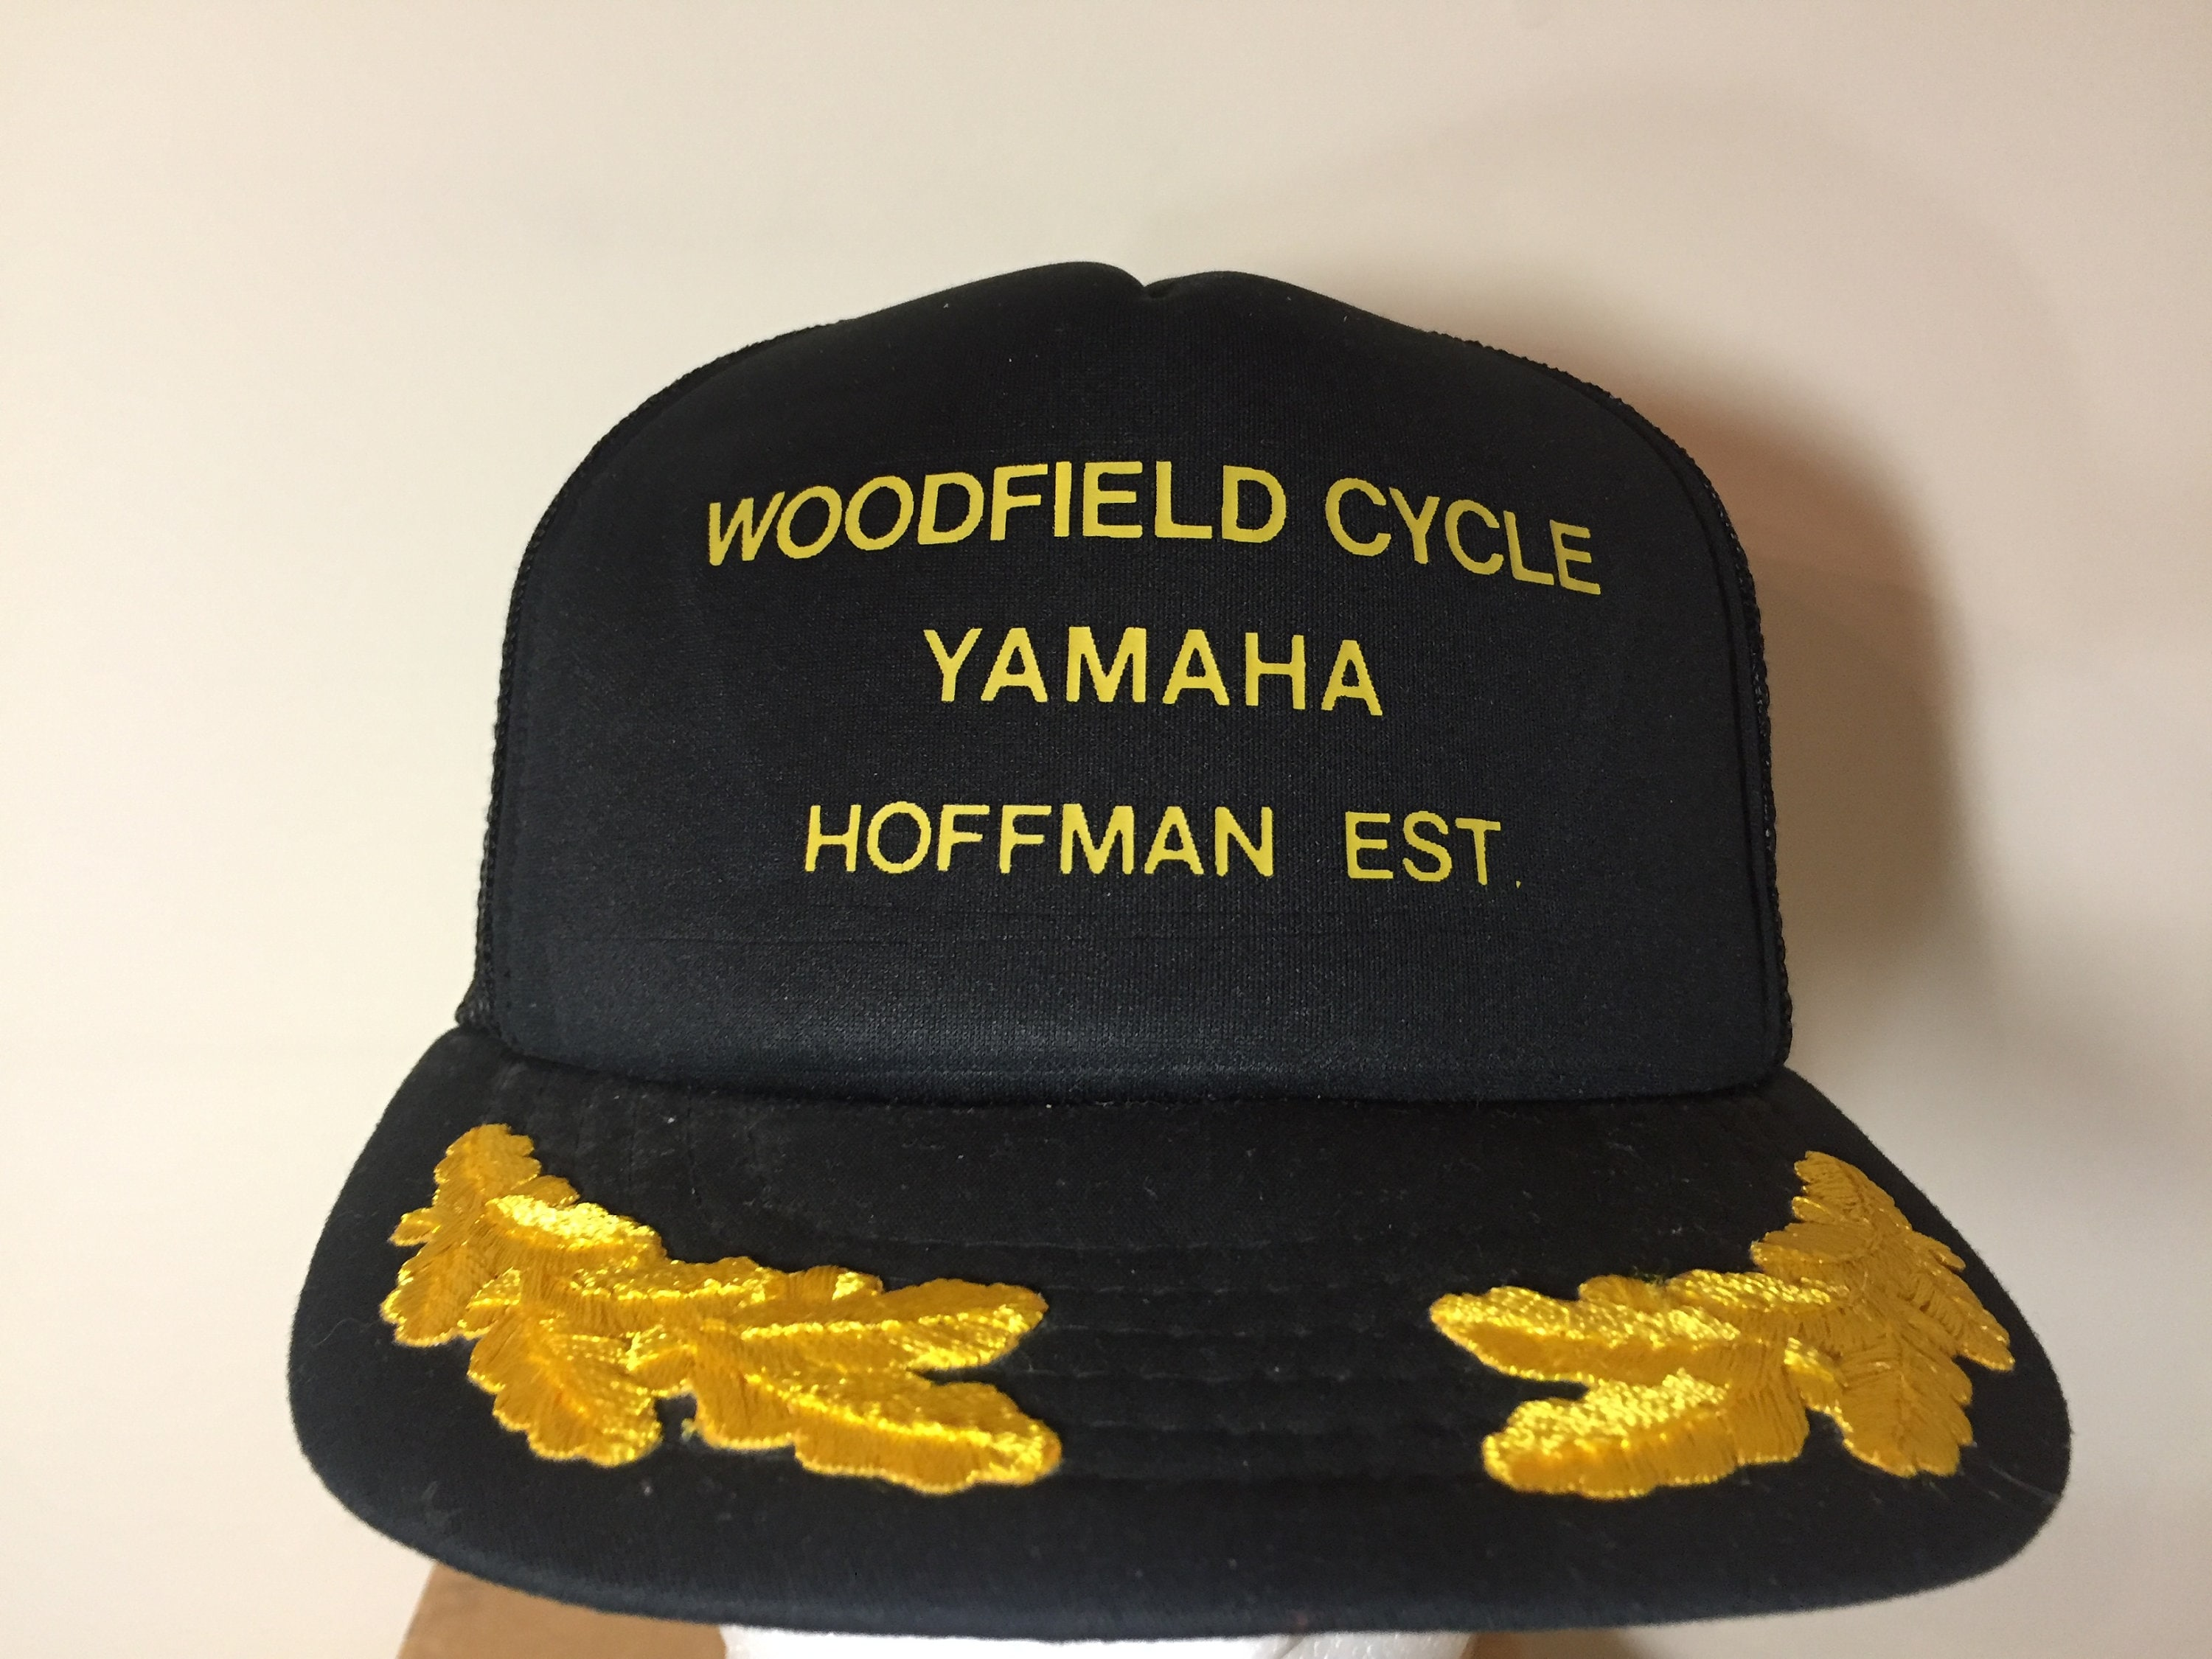 Ball Cap Adult Men Women WOODFIELD CYCLE YAMAHA Hoffman  84b03601b9f